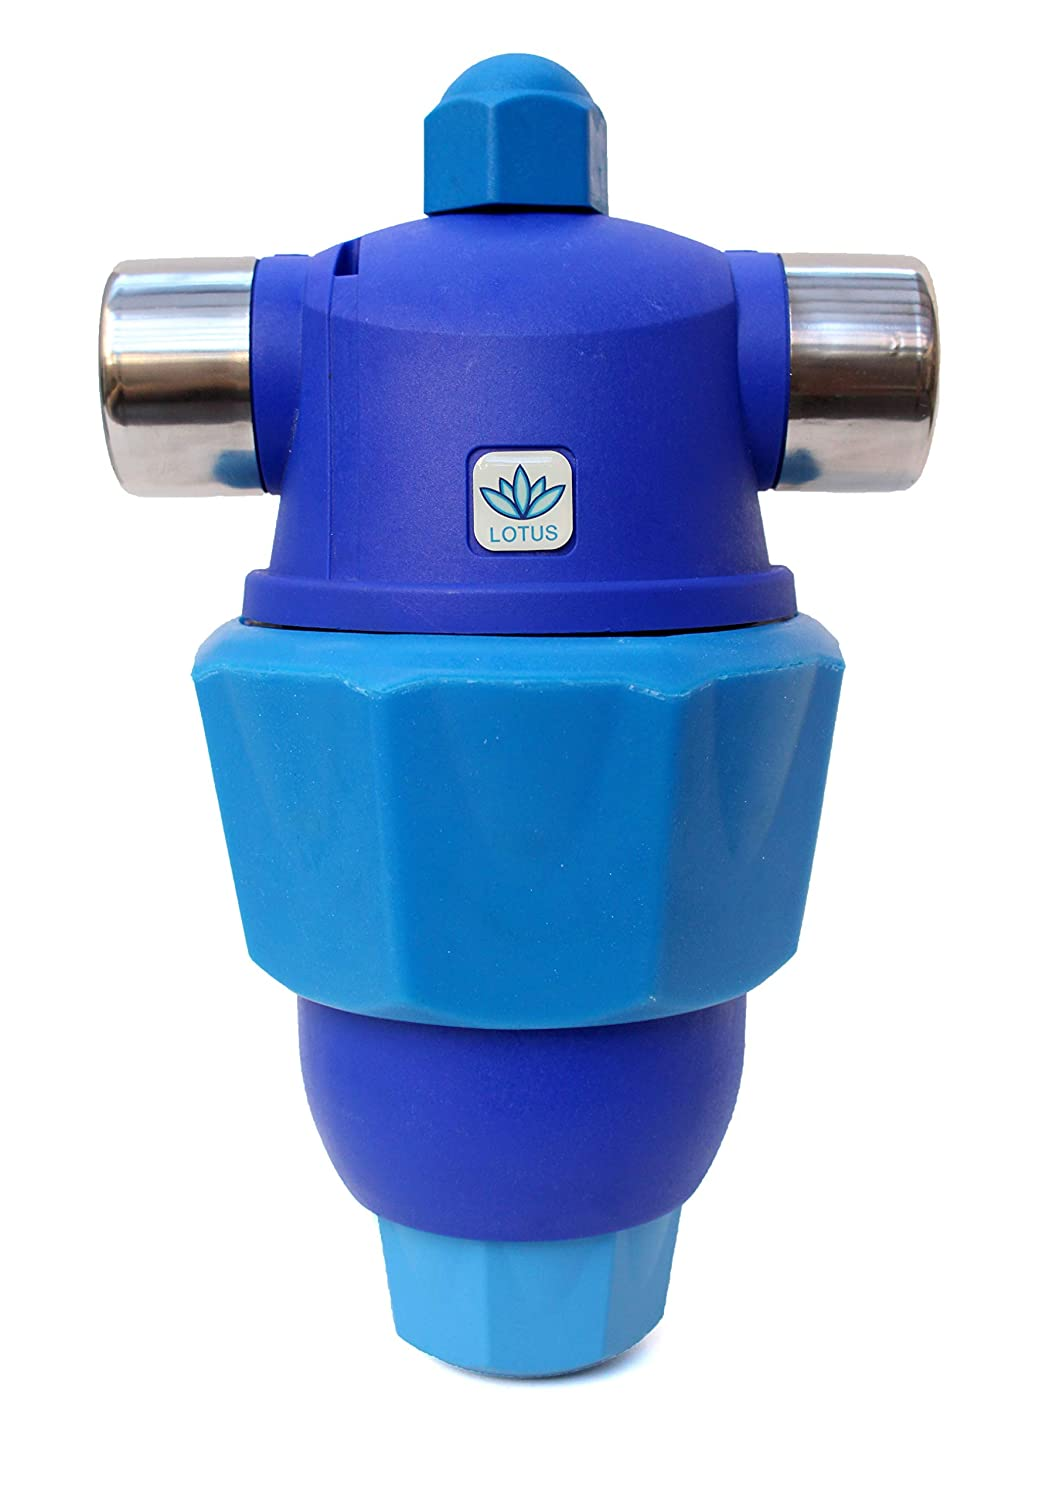 Hardless NG Lotus Whole House Water Filter and Water Conditioner, Salt Free, Better Tasting, Cleaner Water, Easy to Install and Maintain